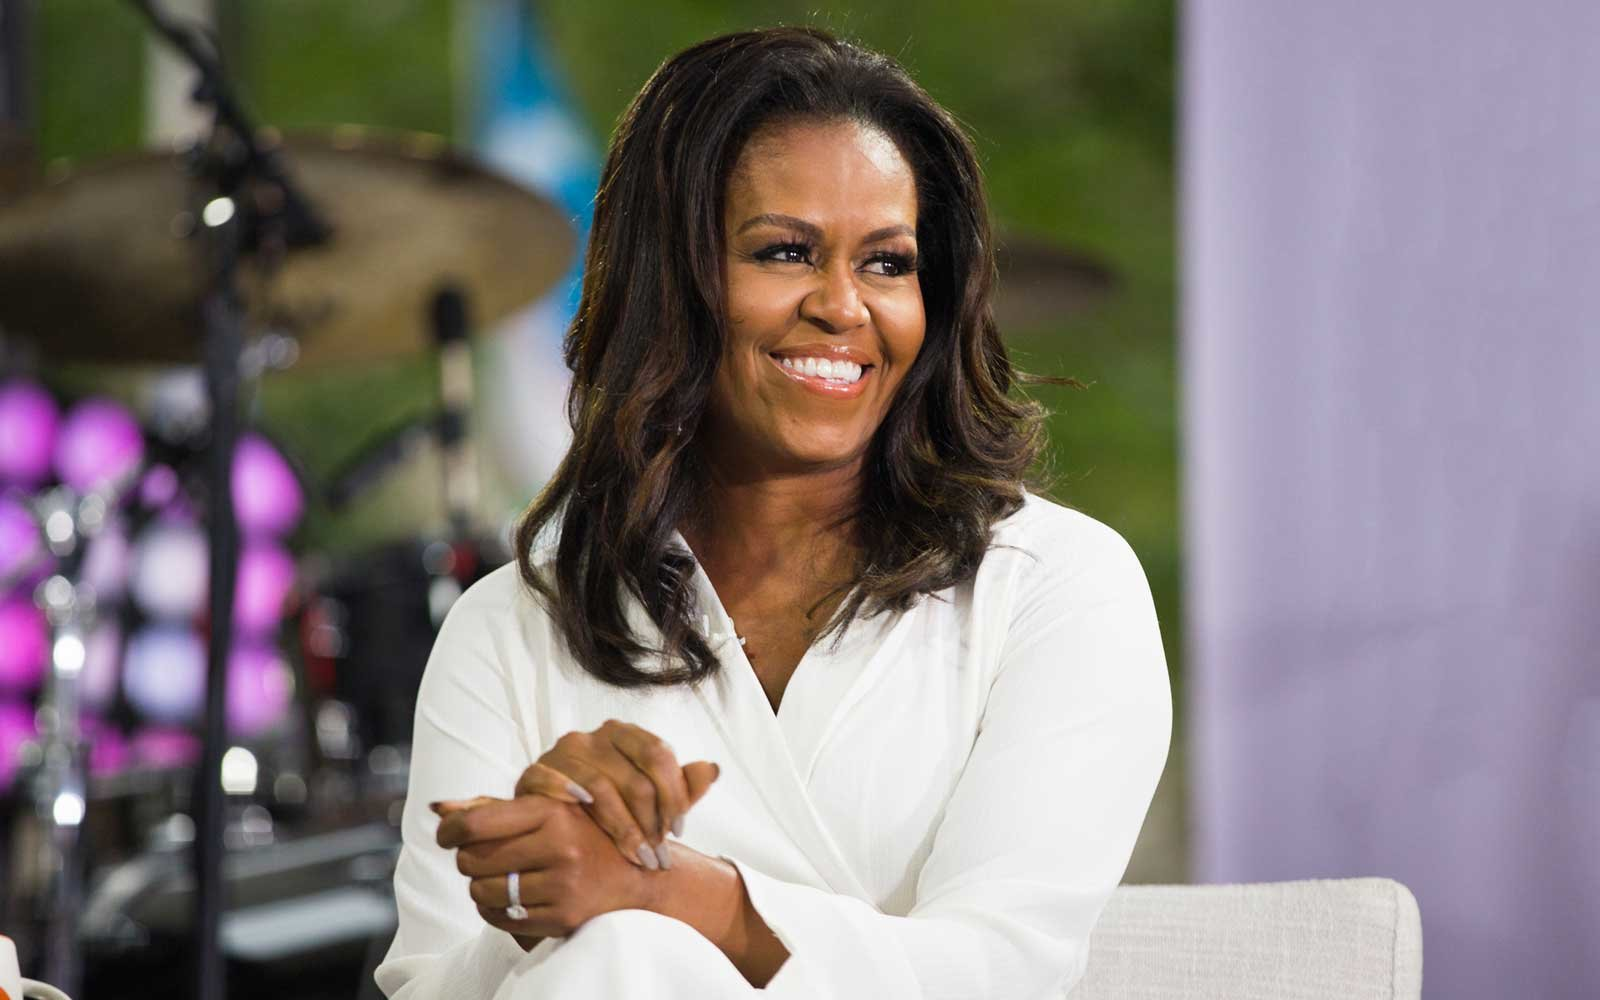 Michelle Obama Has Some Sage Advice For Meghan Markle